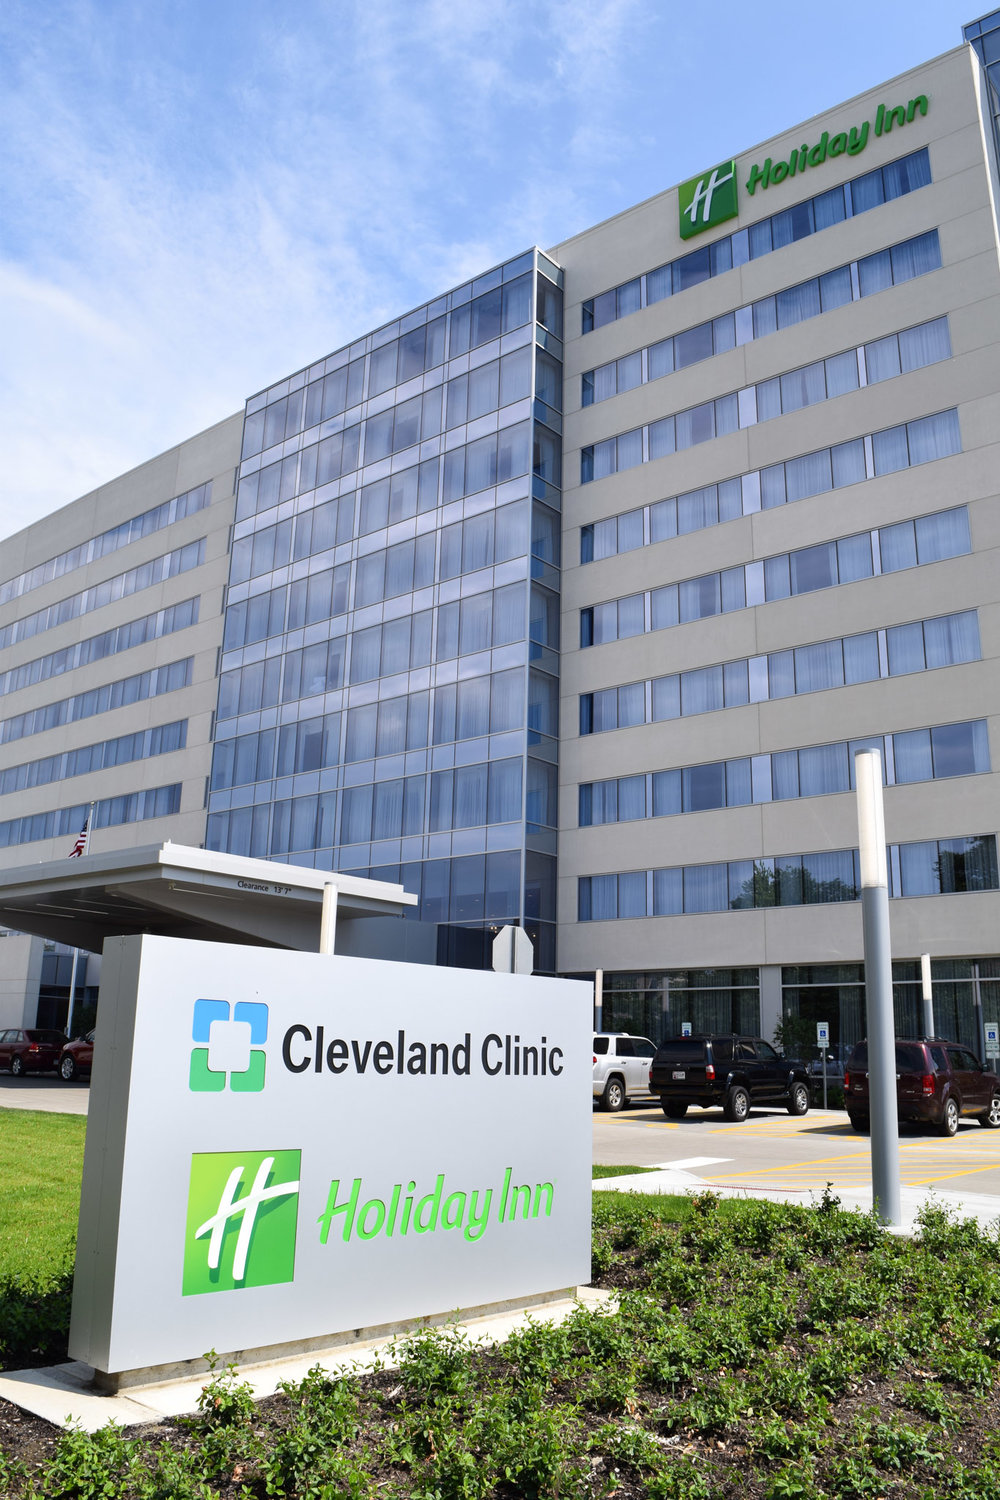 Cleveland Clinic Holiday Inn - Cleveland, OH Developed by MDG, Asset Management by MAM